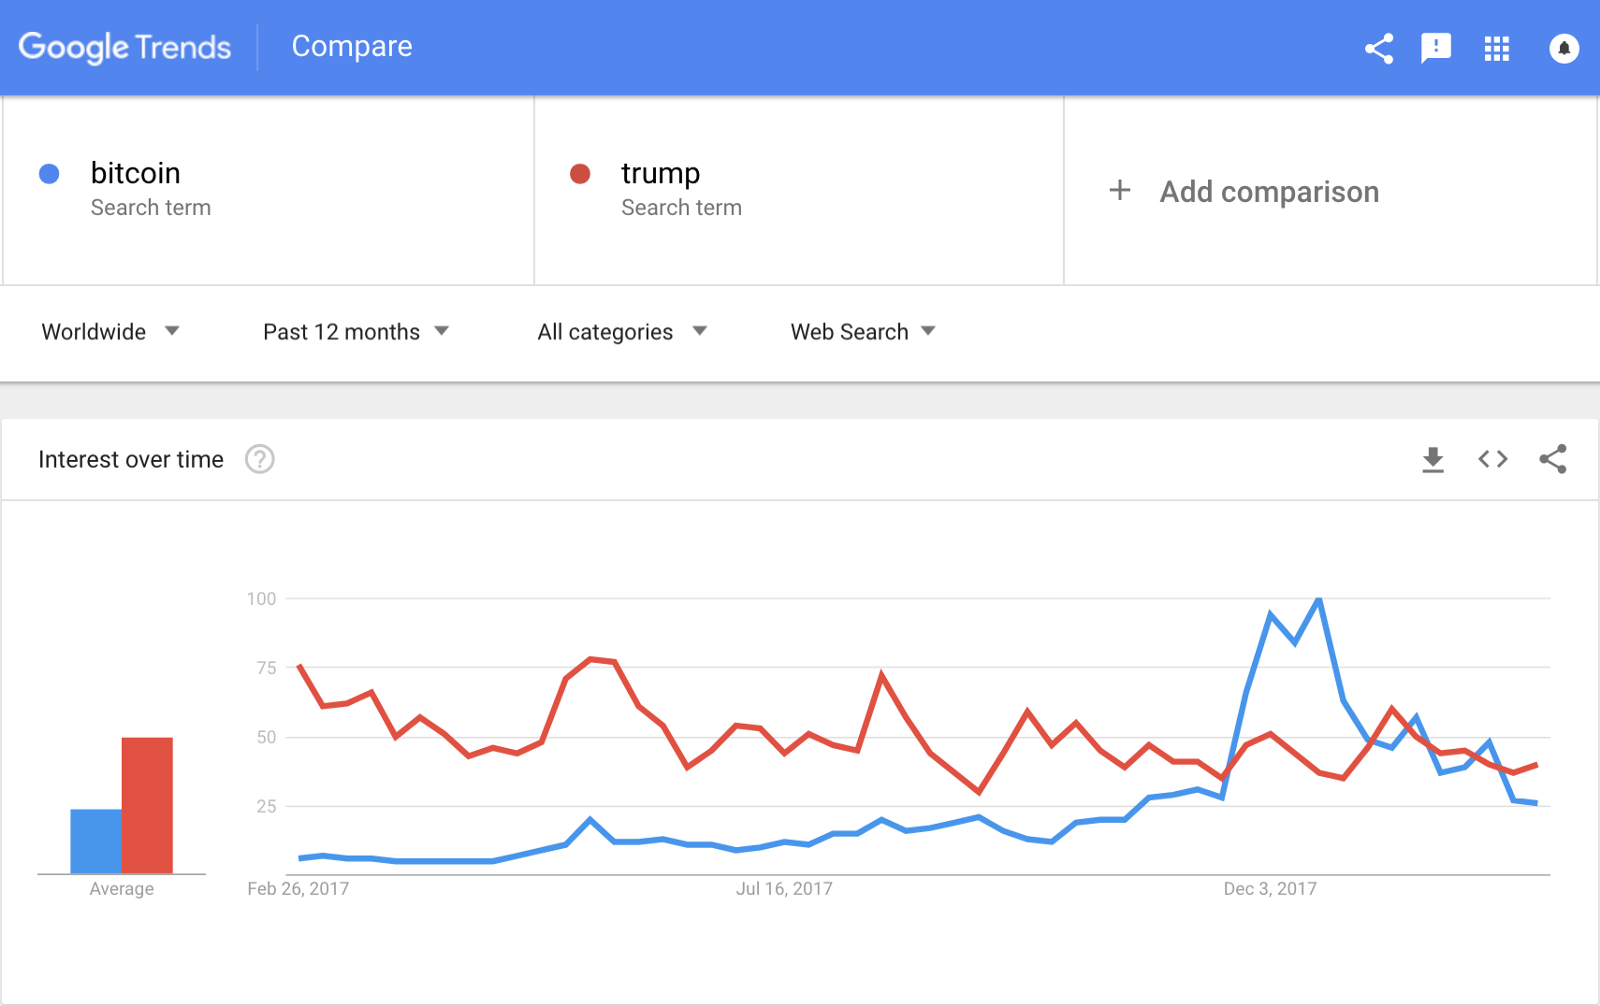 At one point, worldwide Google searches for Bitcoin surpassed searches for  Trump, which is no easy feat.